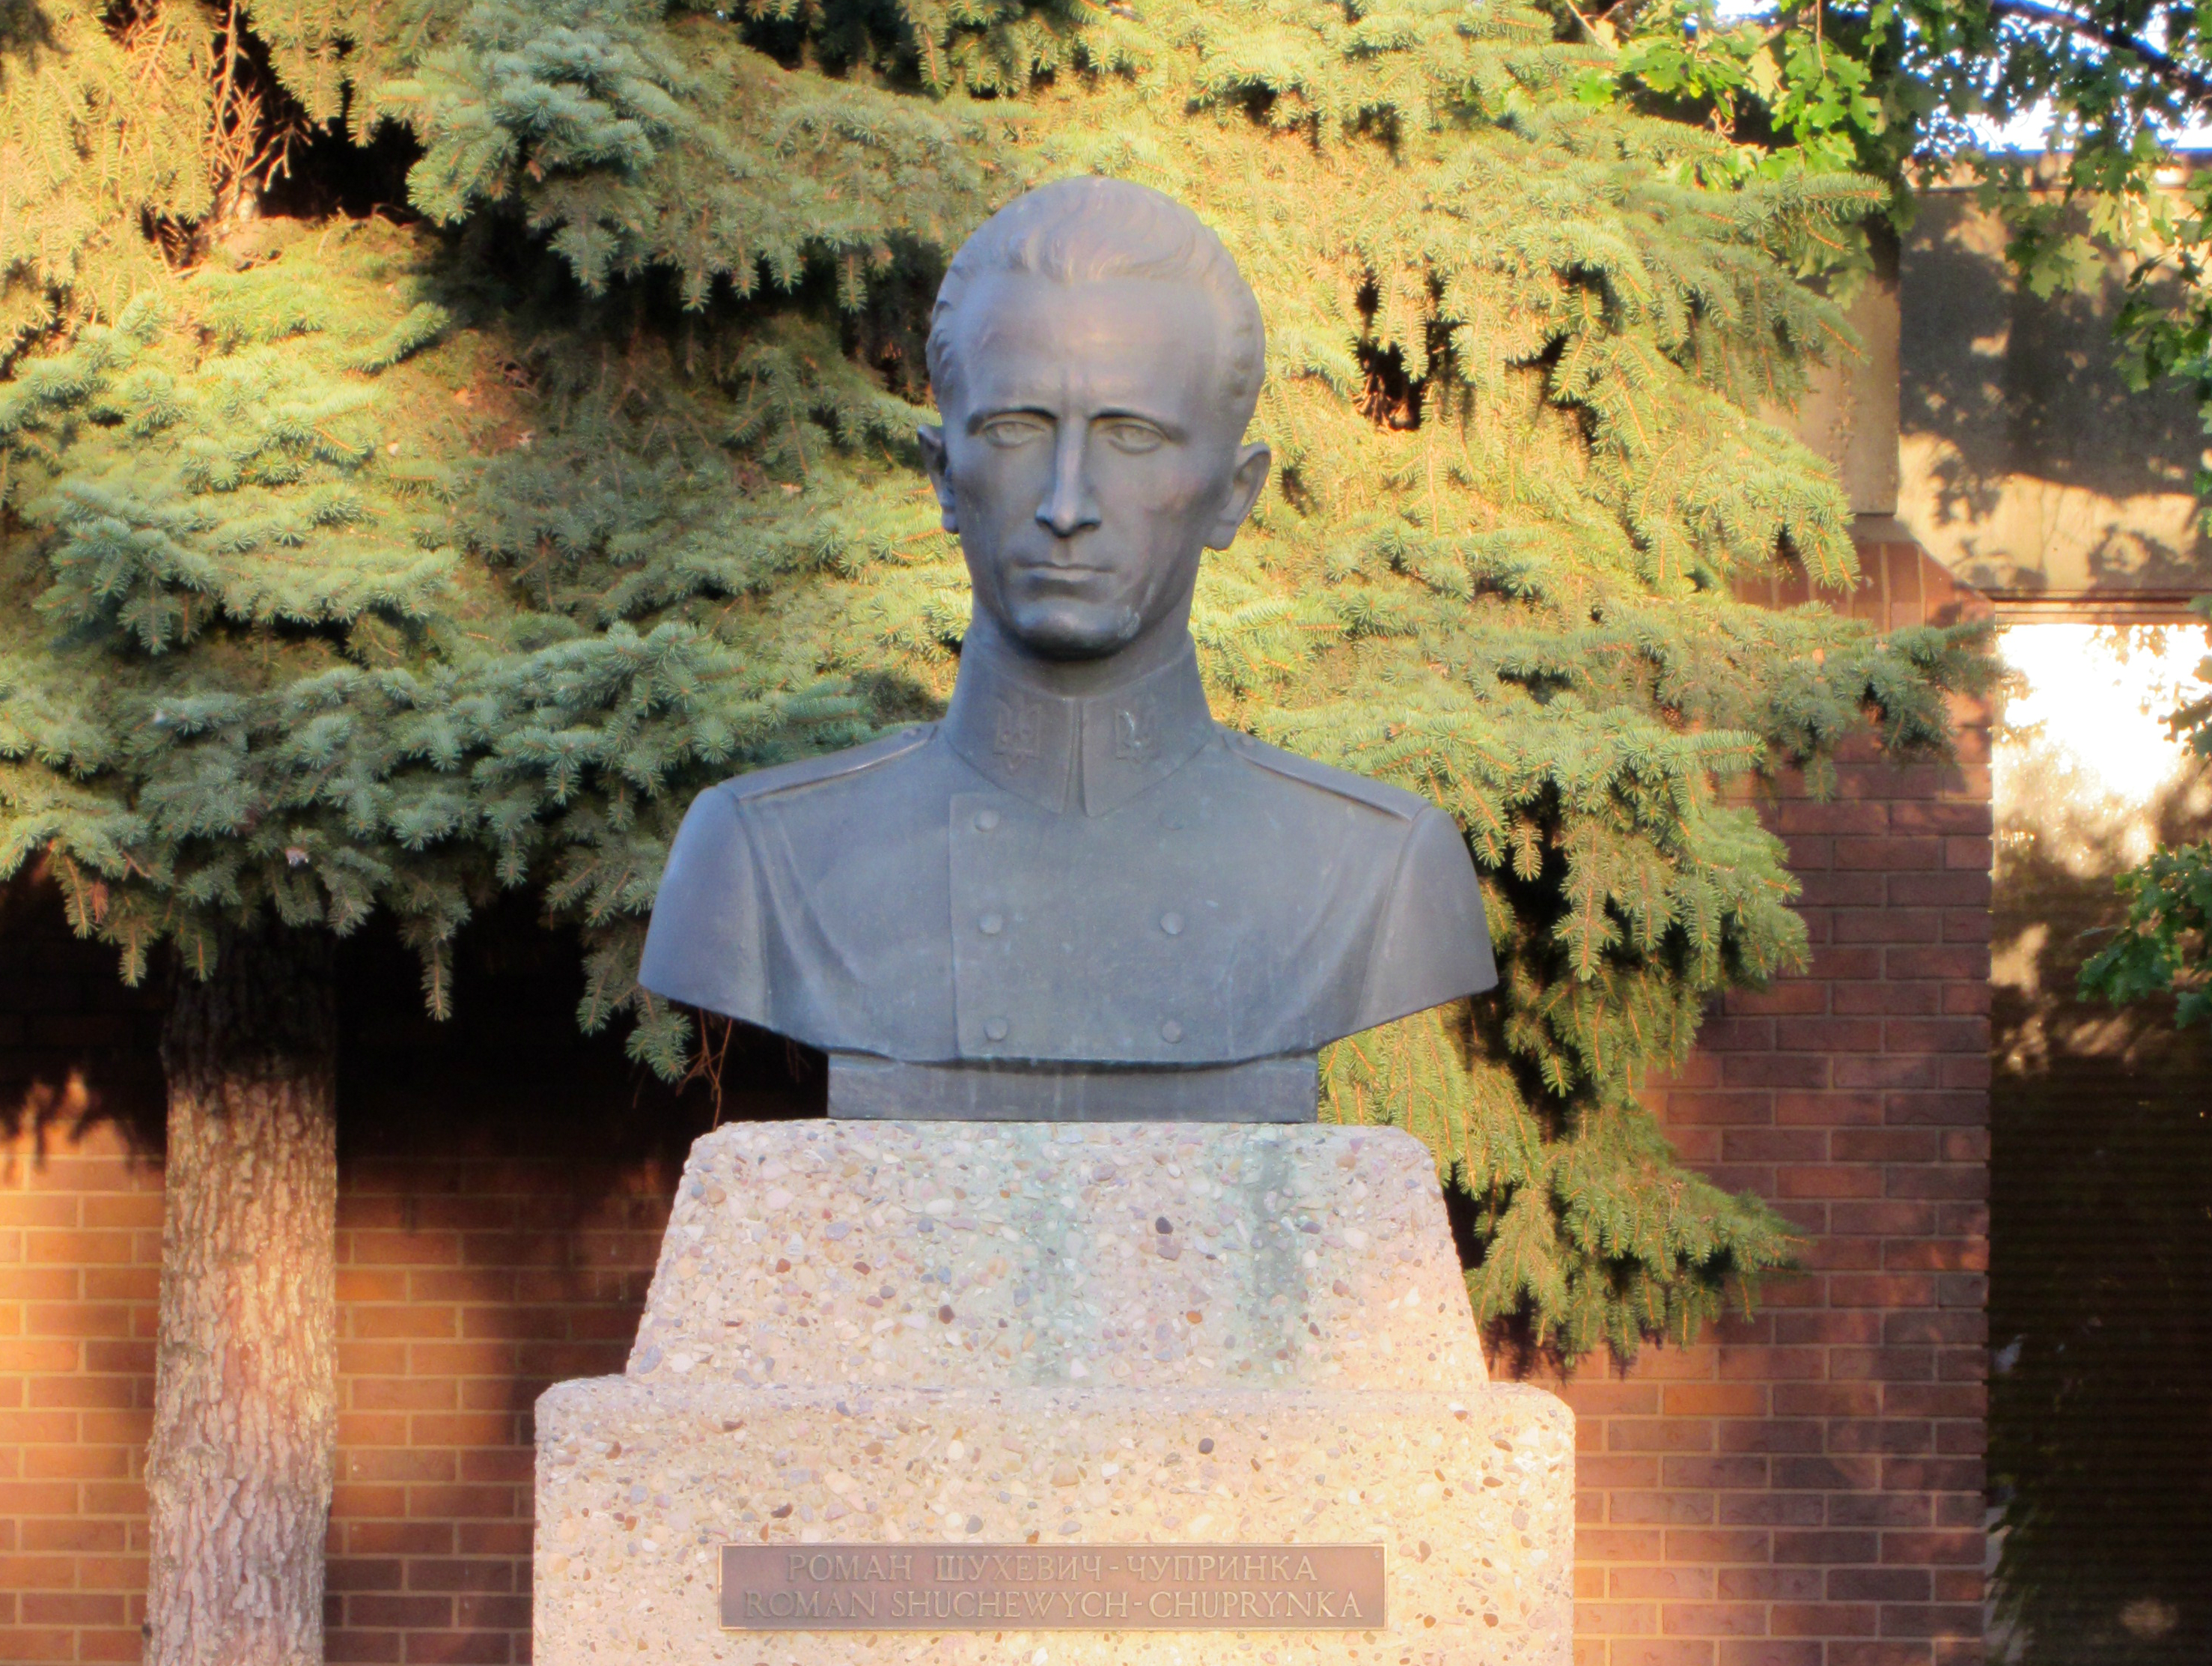 The monument to Roman Shukhevych, commander of the Ukrainian Insurgent Army from 1943 until his death in 1950, has stood at the entrance of the Ukrainian Youth Unity Complex in North Edmonton, Alberta, since mid-1970s.